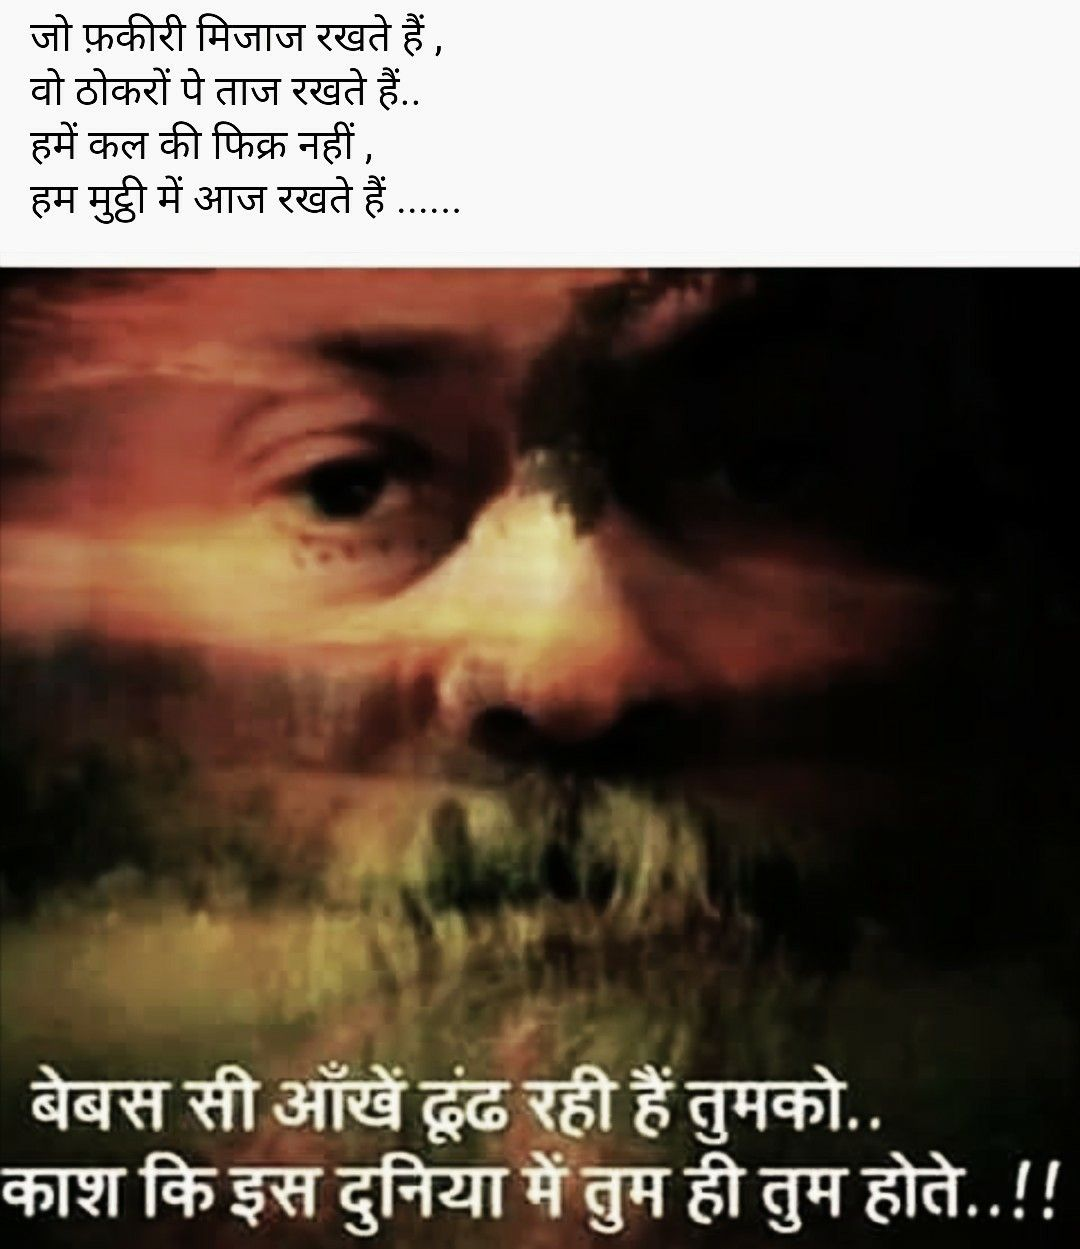 Pin By Silent Soul On Shabd Hindi Quotes Osho Love Quotes